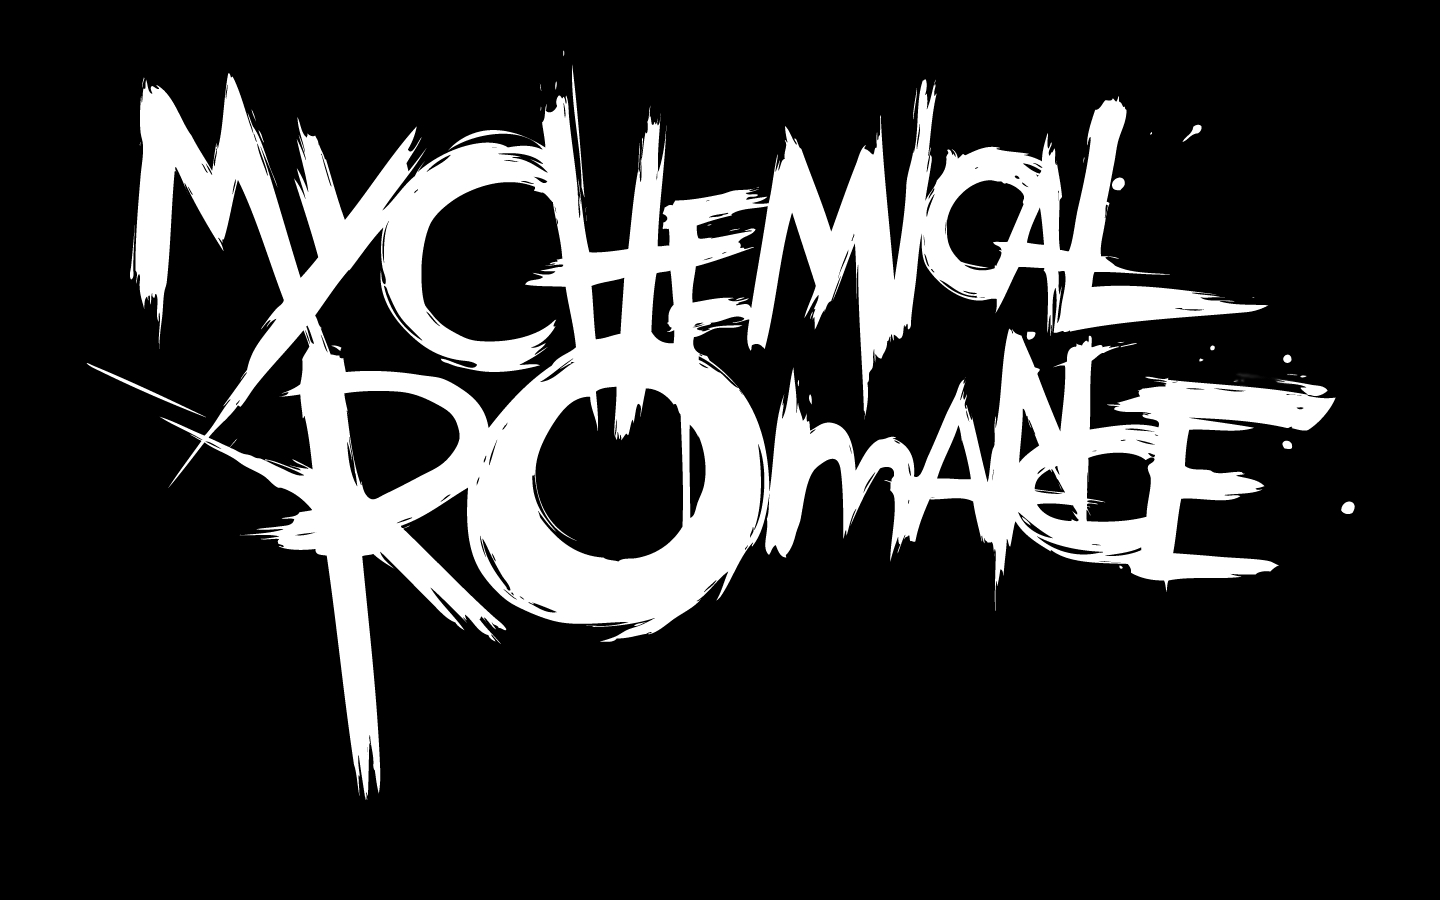 10 Latest My Chemical Romance Wallpapers FULL HD 1920×1080 For PC Background